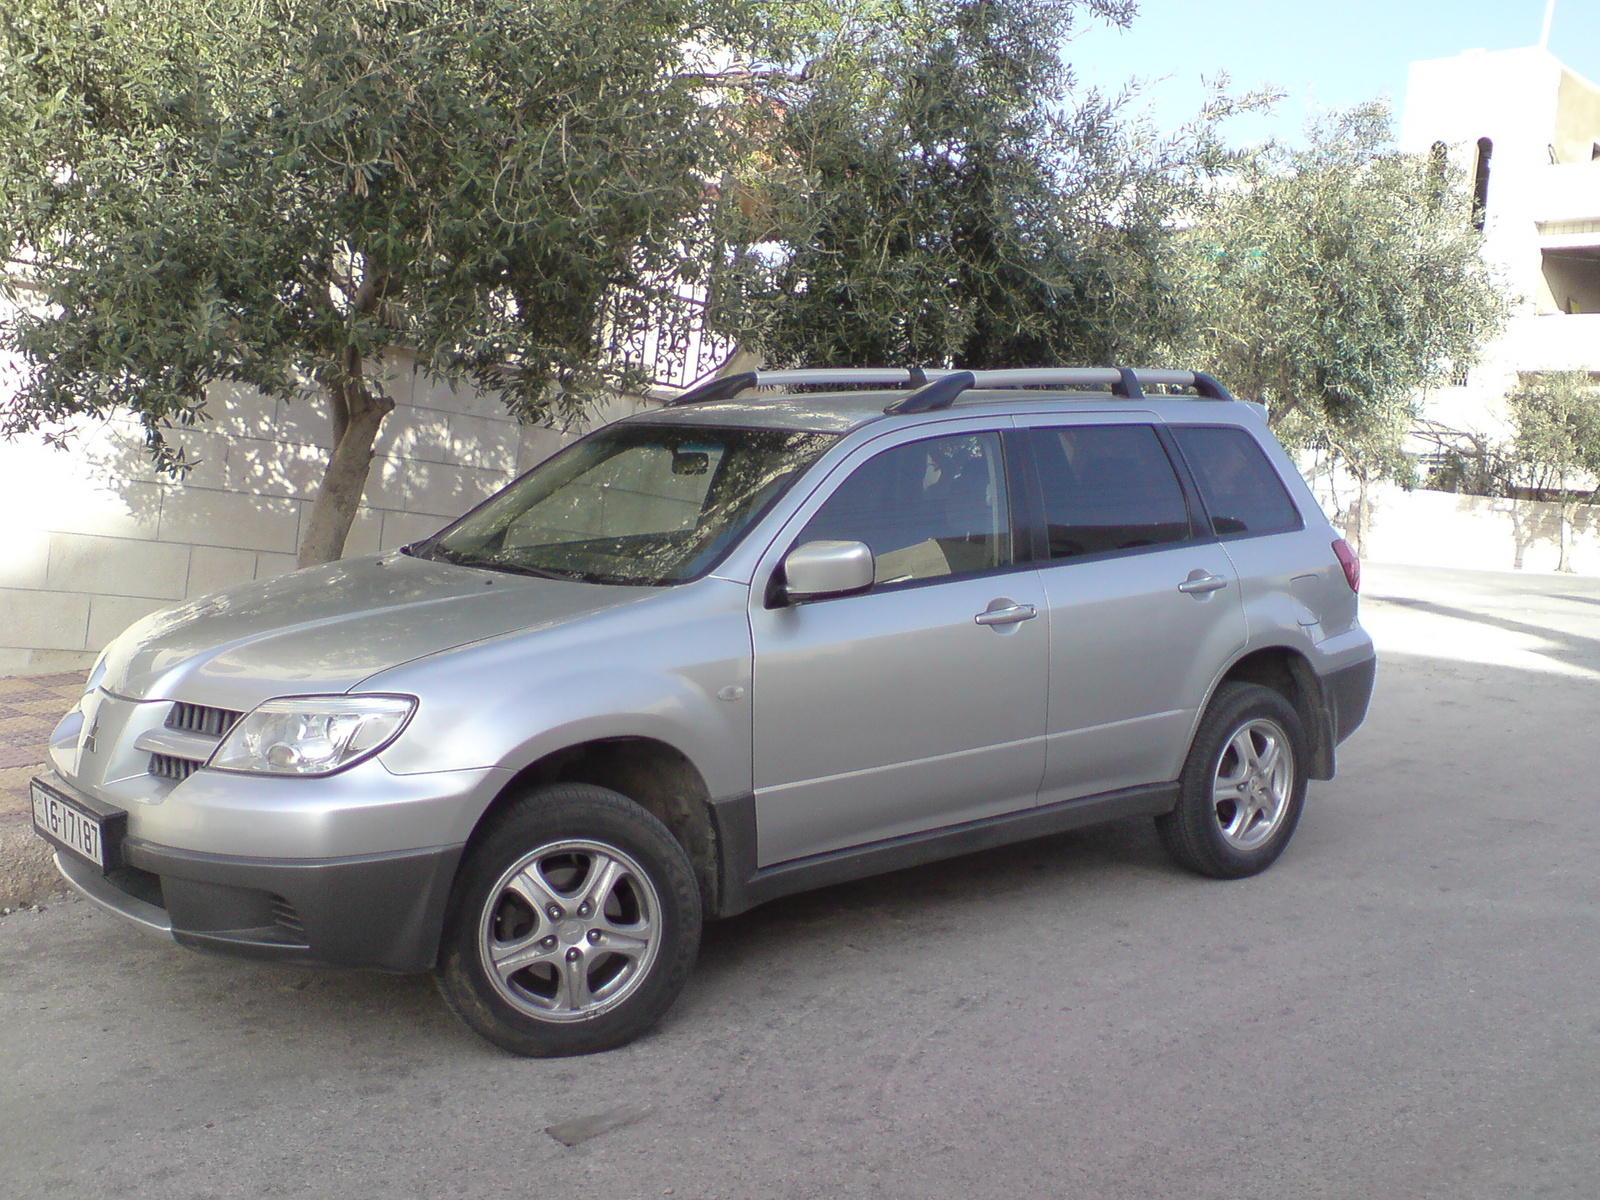 2005 Mitsubishi Outlander LS AWD picture